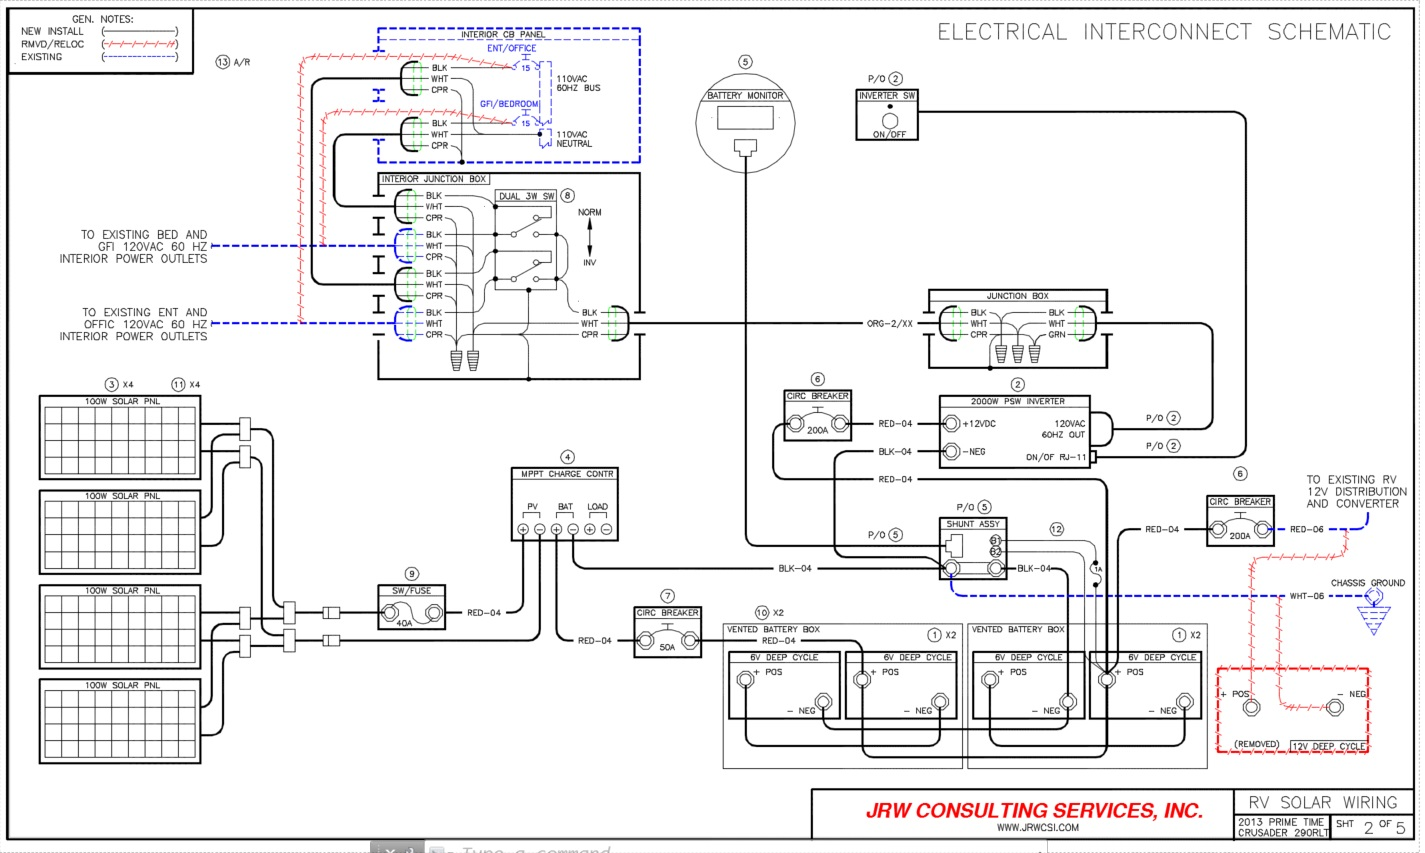 wiring diagram for solar battery charger creative venn rv power upgrade - live, breathe, move